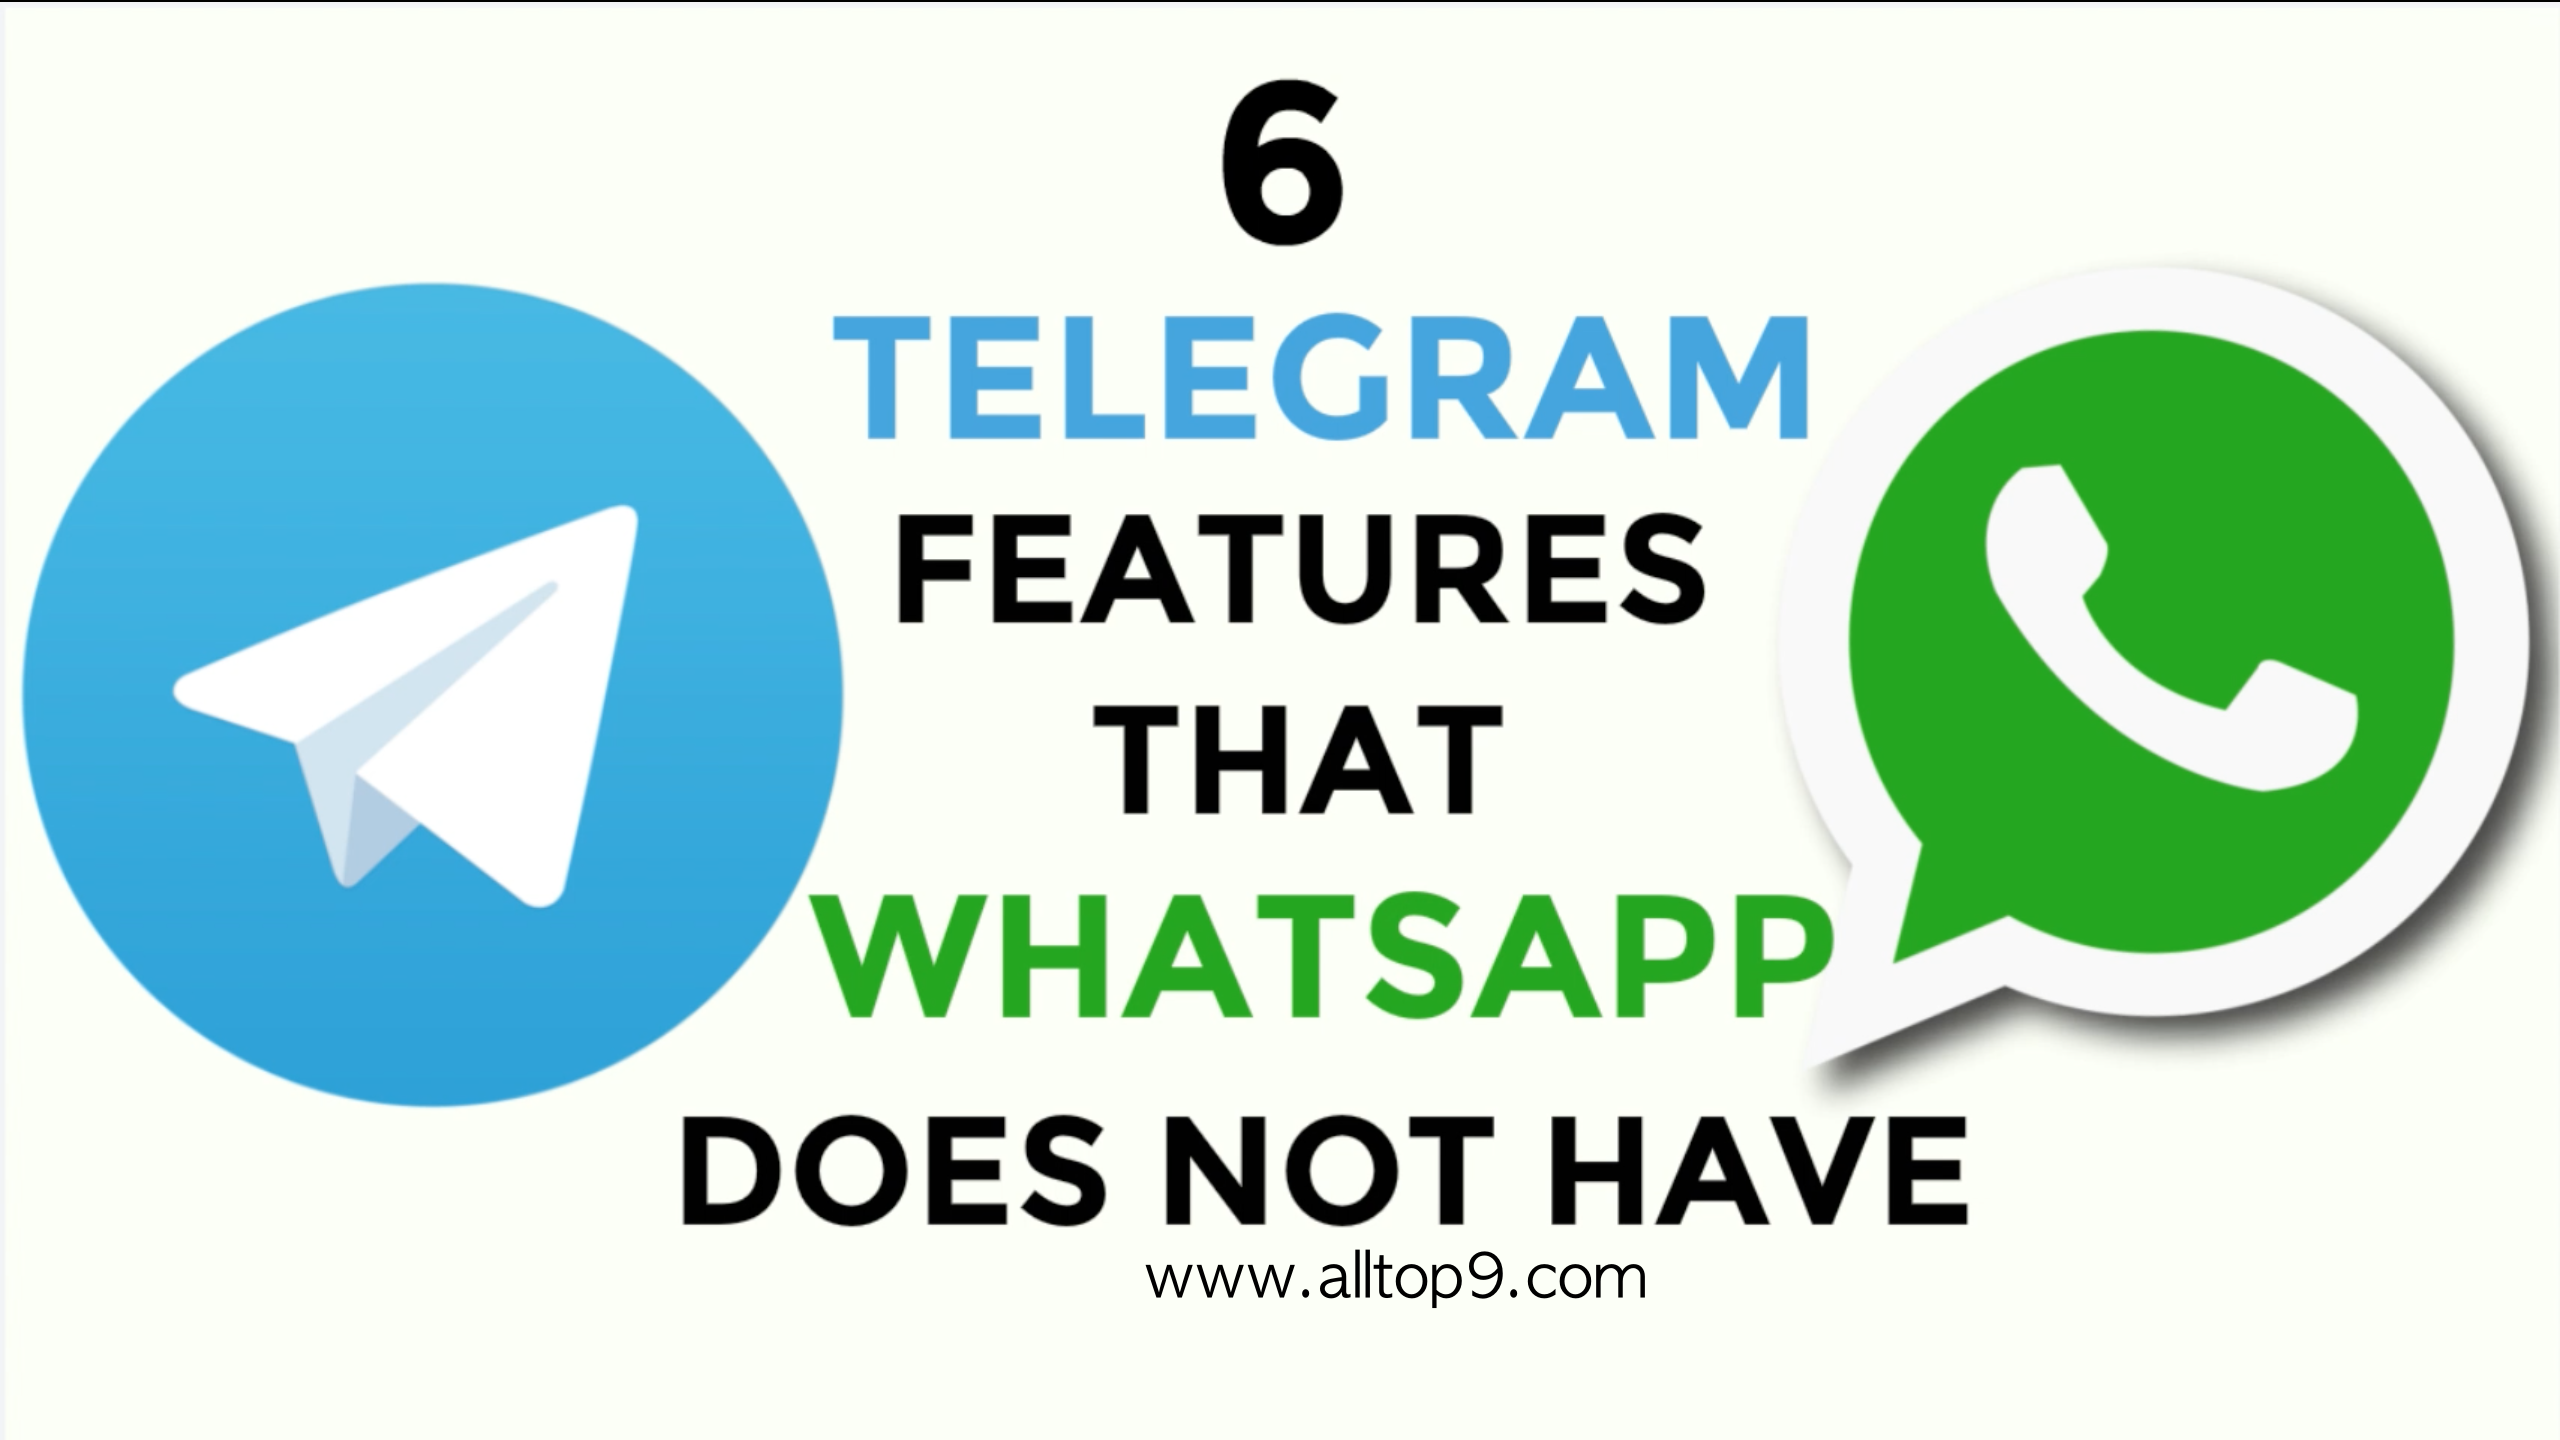 6-telegram-features-that-whatsapp-does-not-have-differences